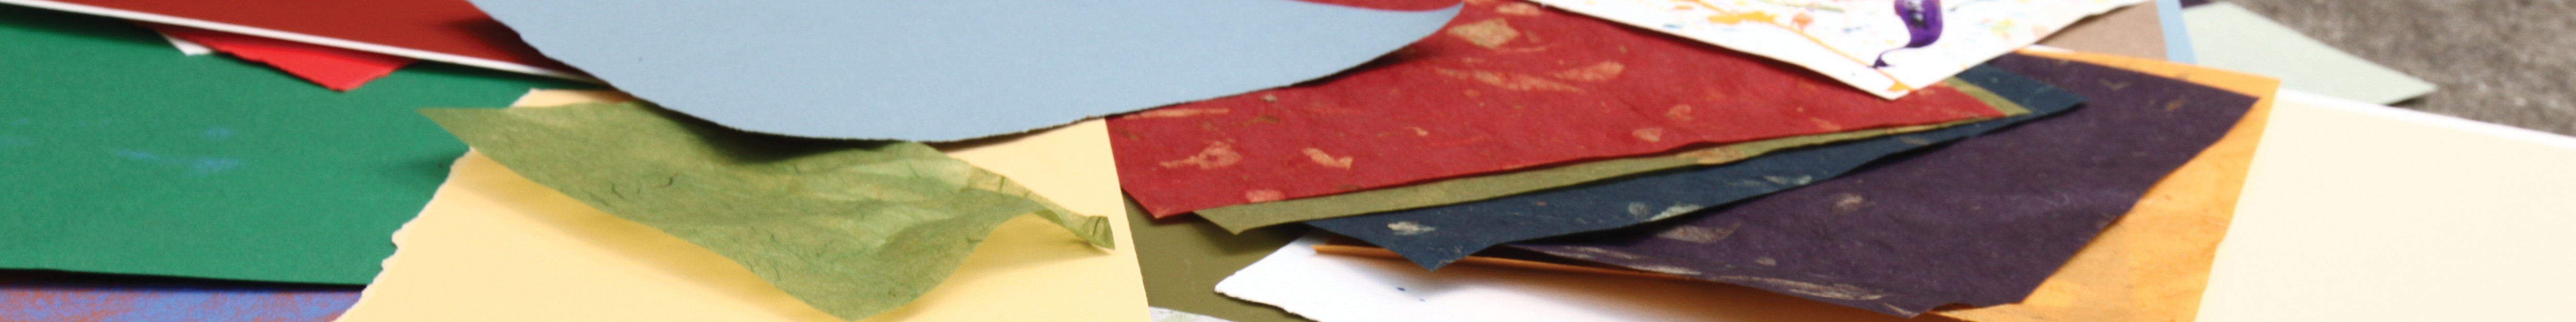 Decorative And Handmade Paper Blick Art Materials